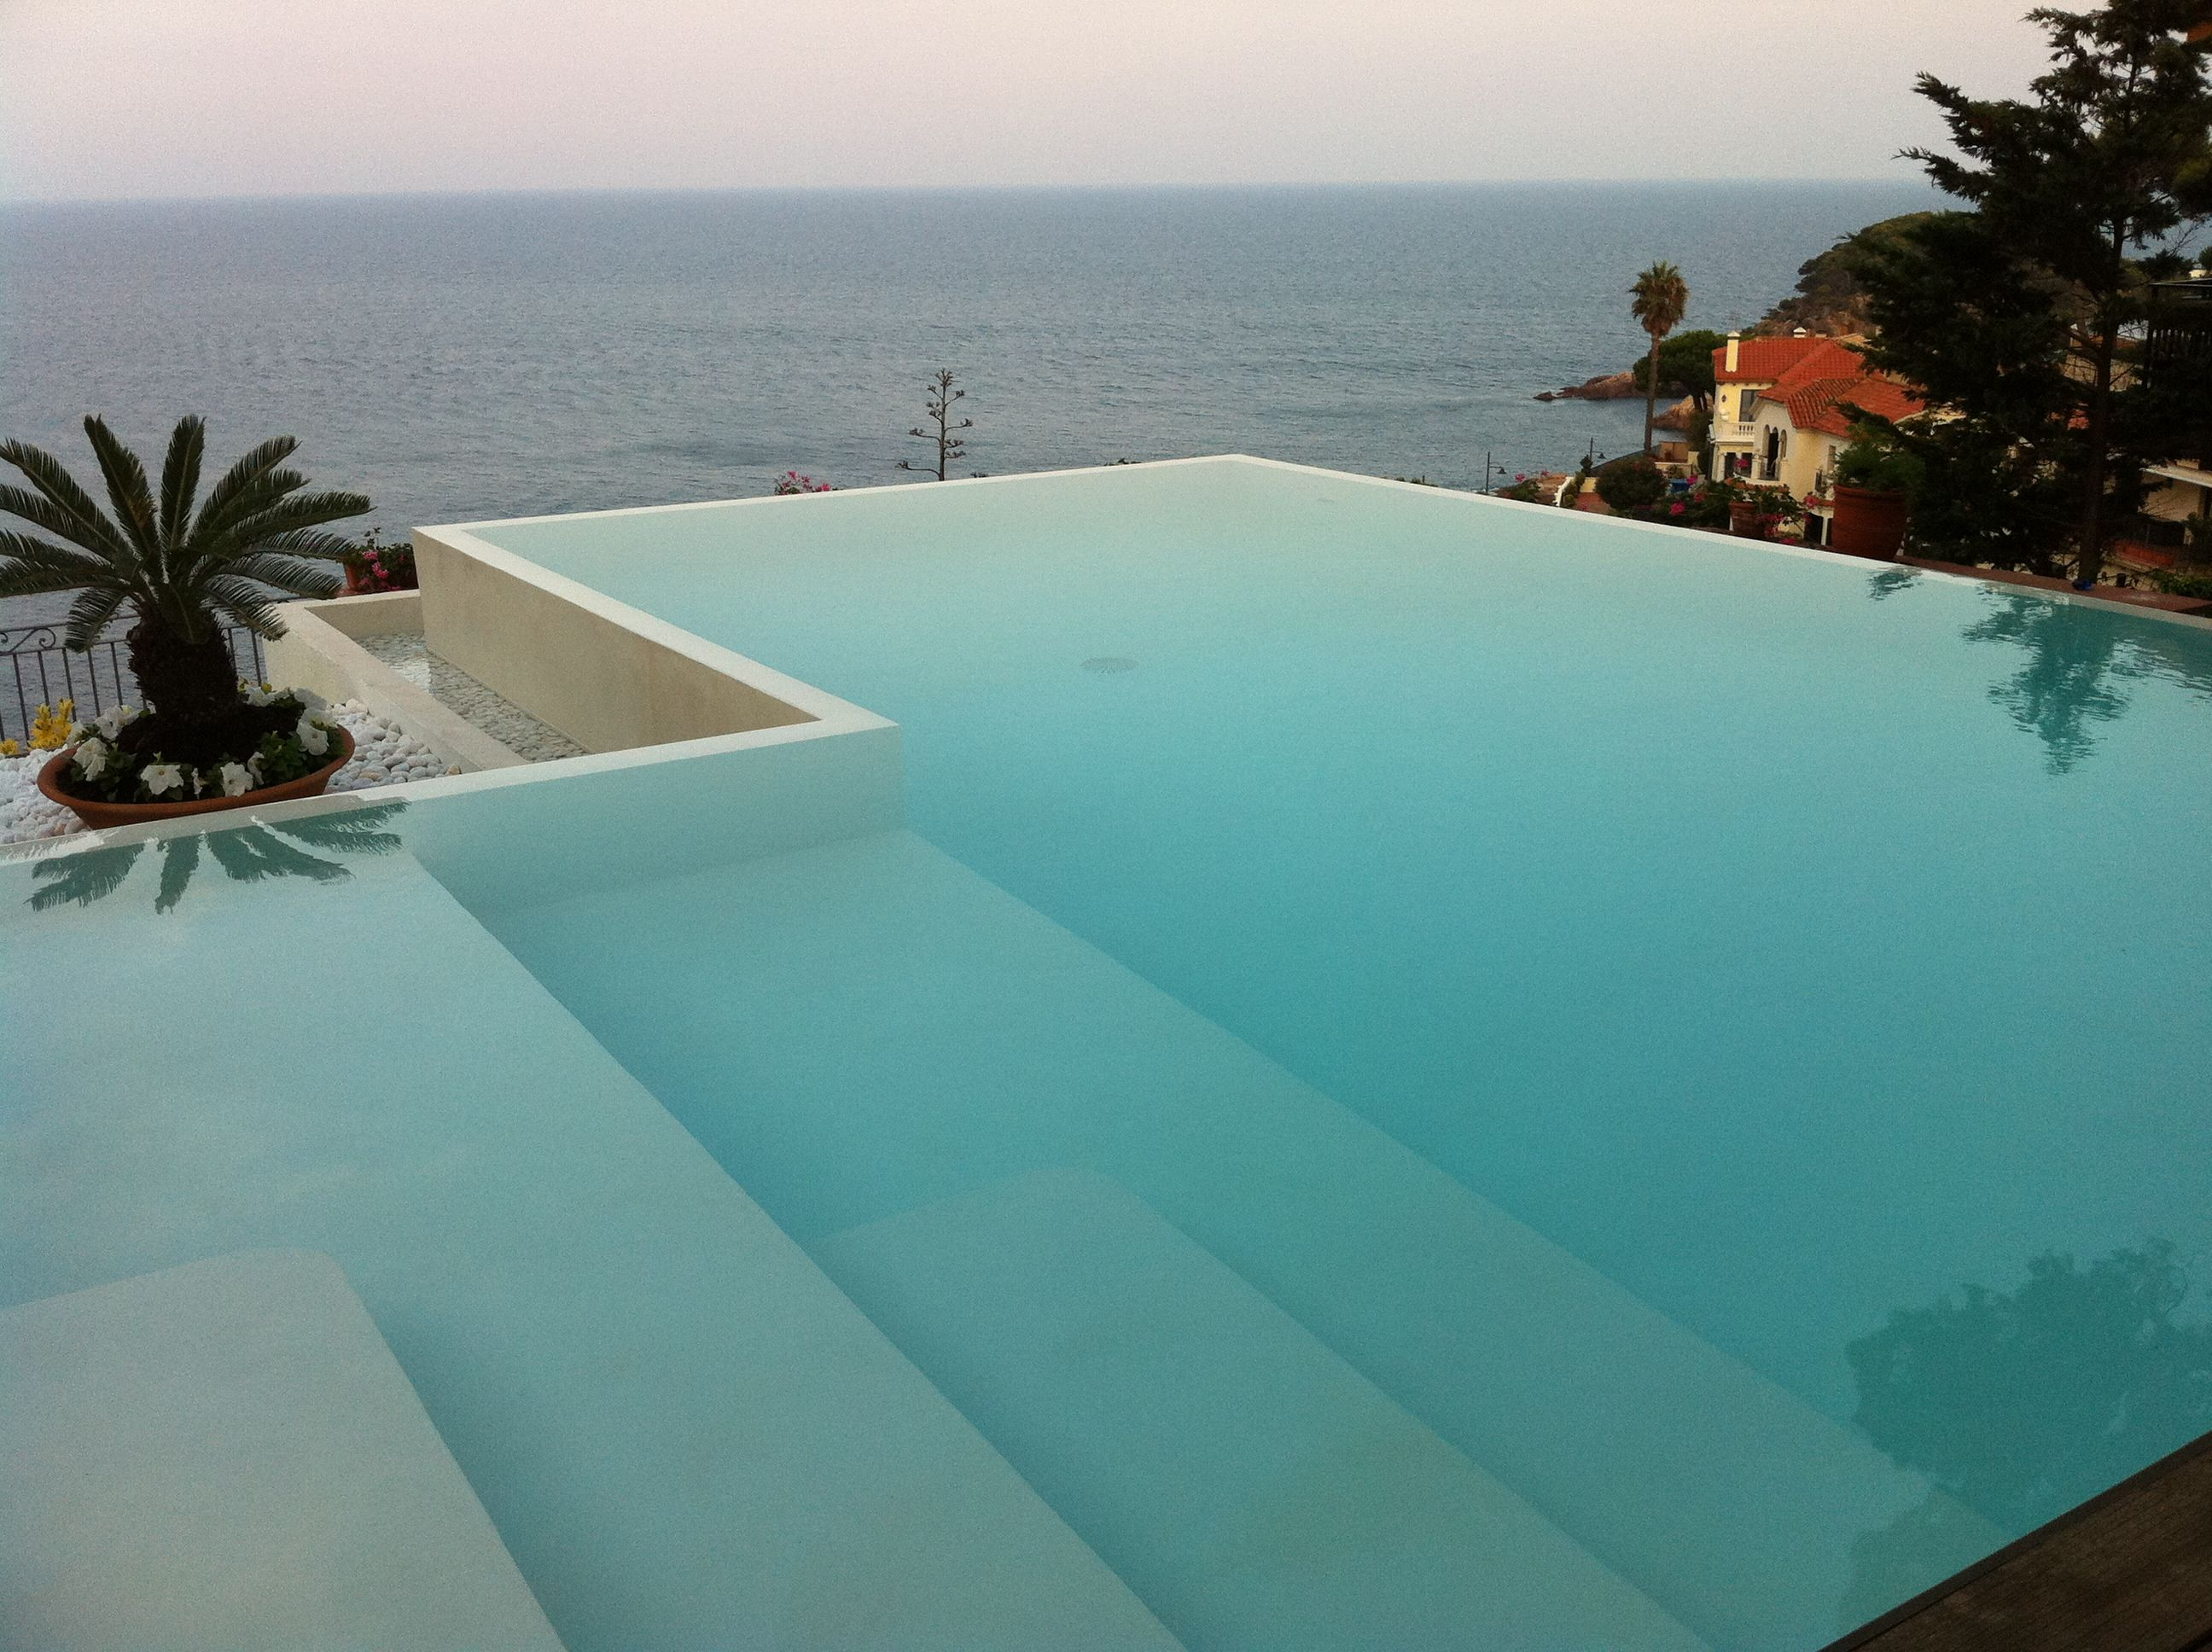 Image result for piscina gresite blanco pools for Piscinas con gresite blanco